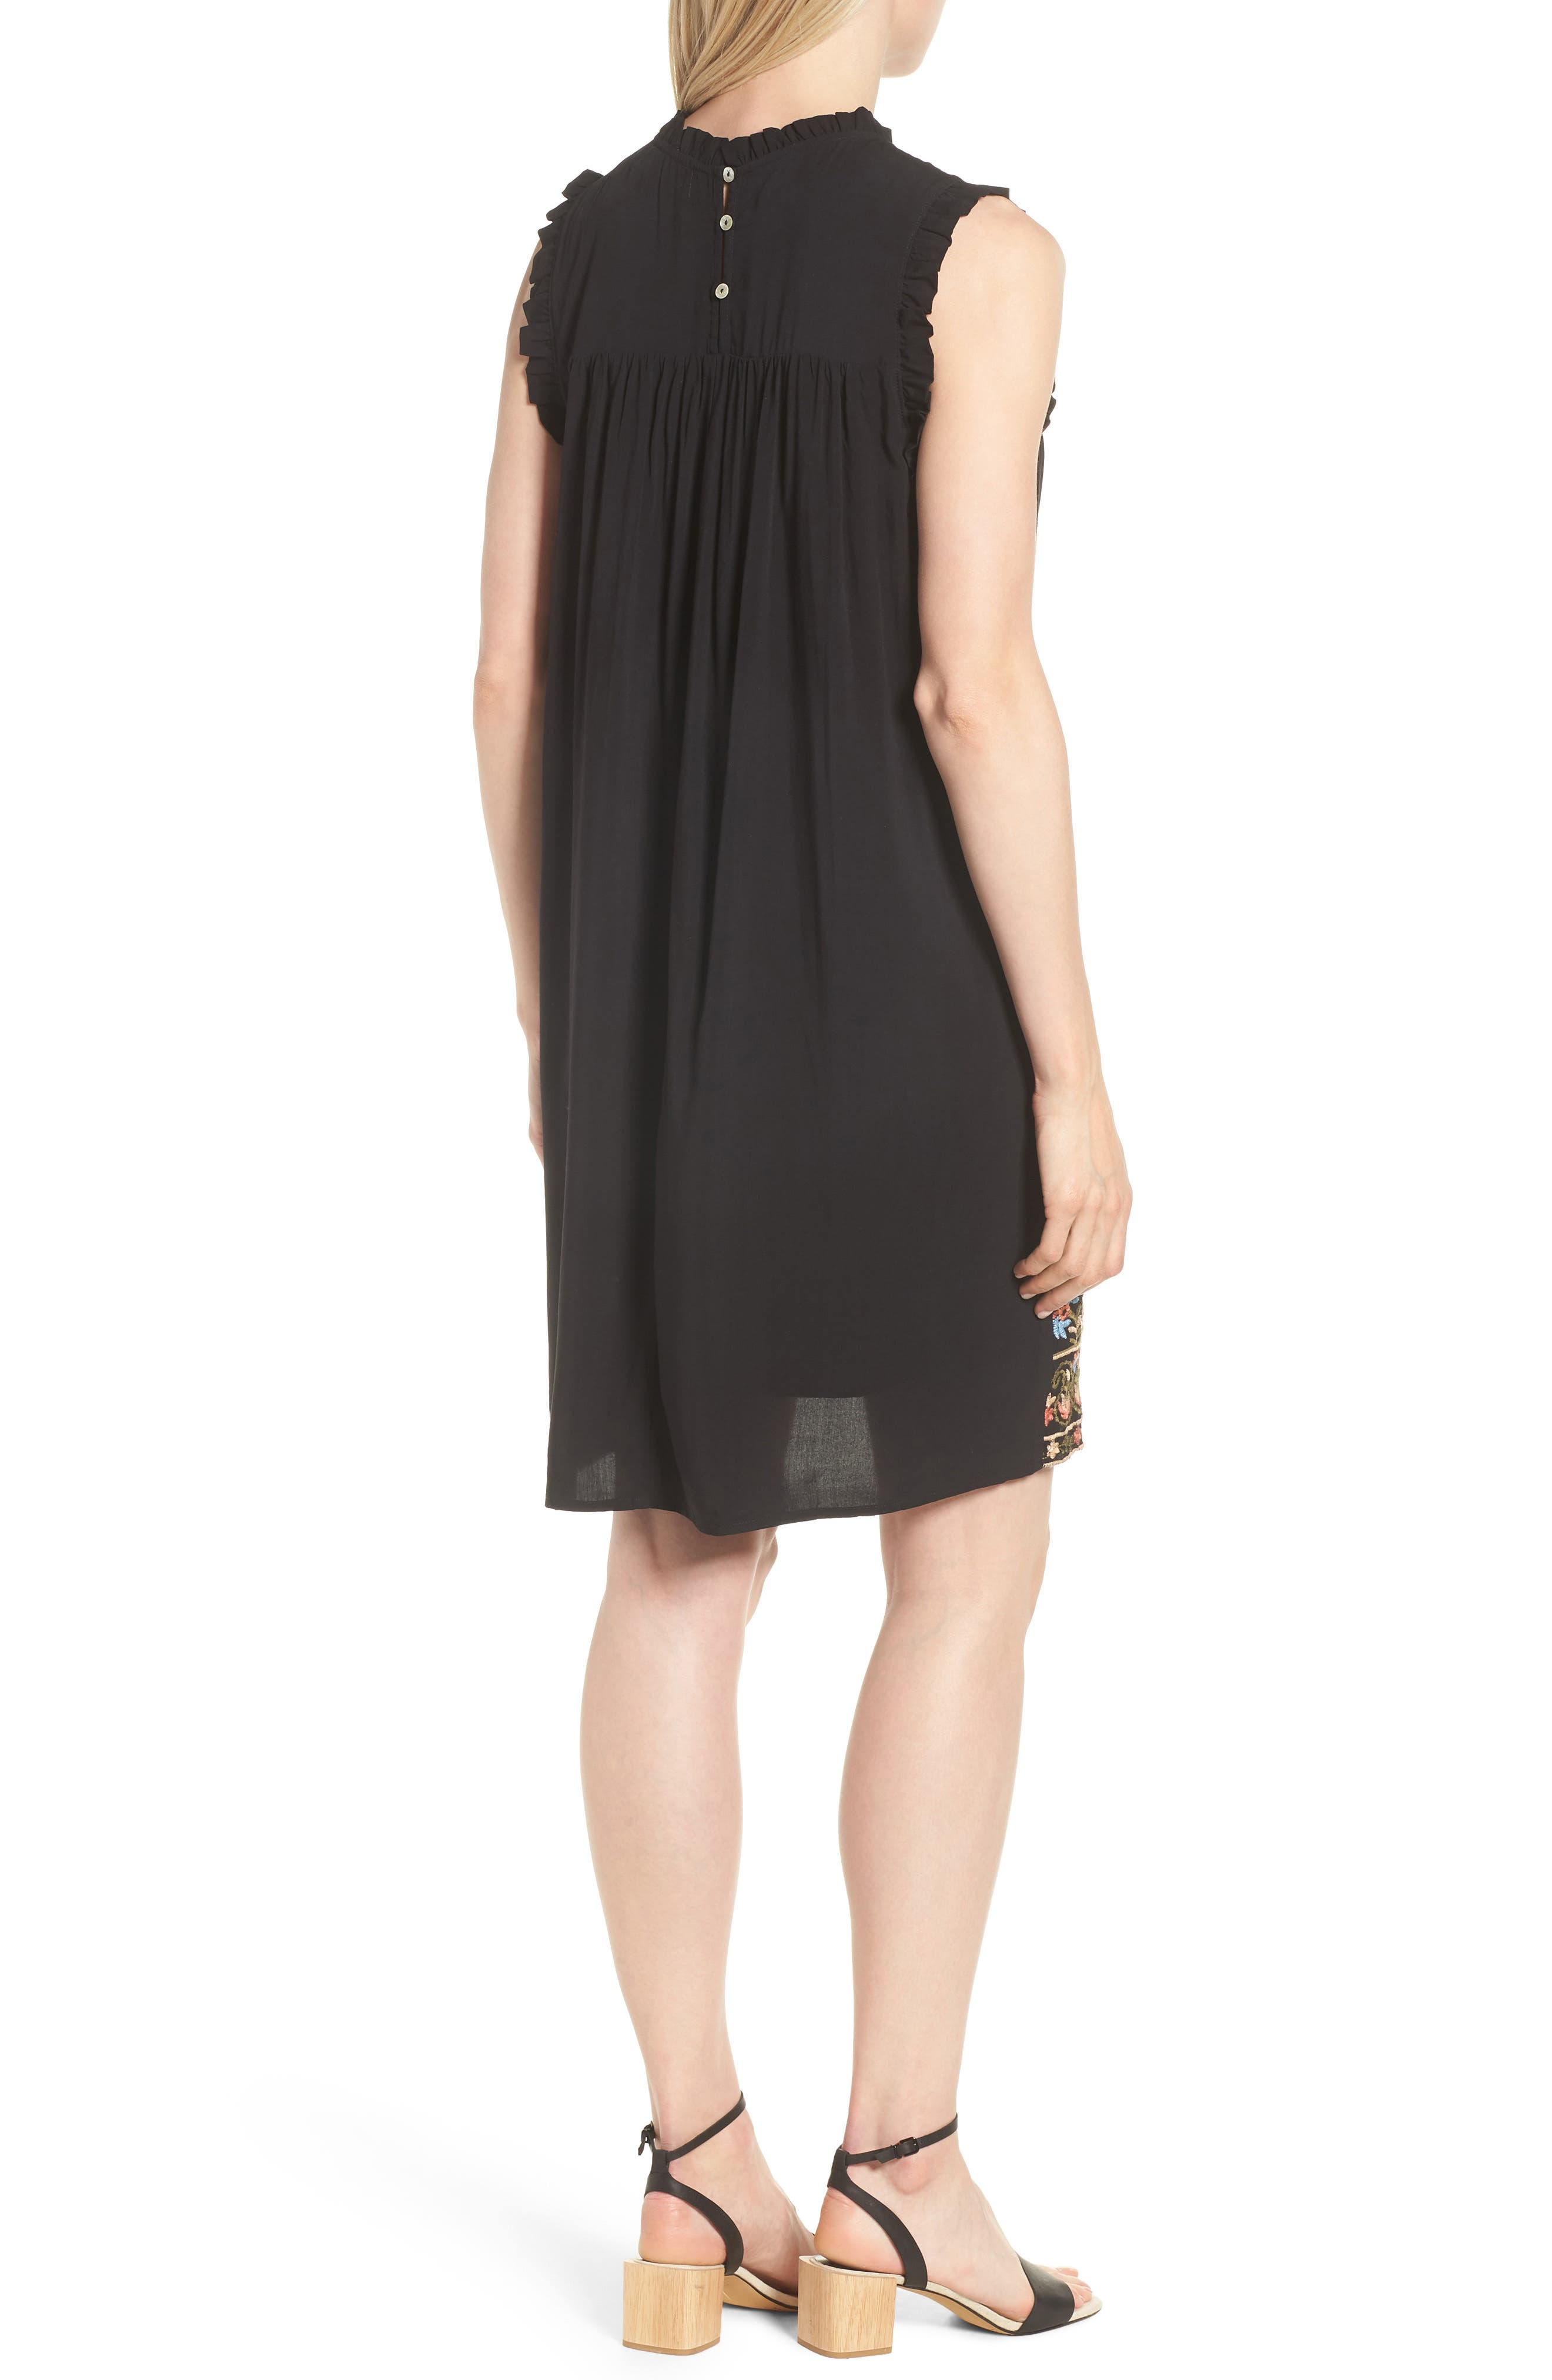 Pintuck Embroidered Shift Dress,                             Alternate thumbnail 2, color,                             001